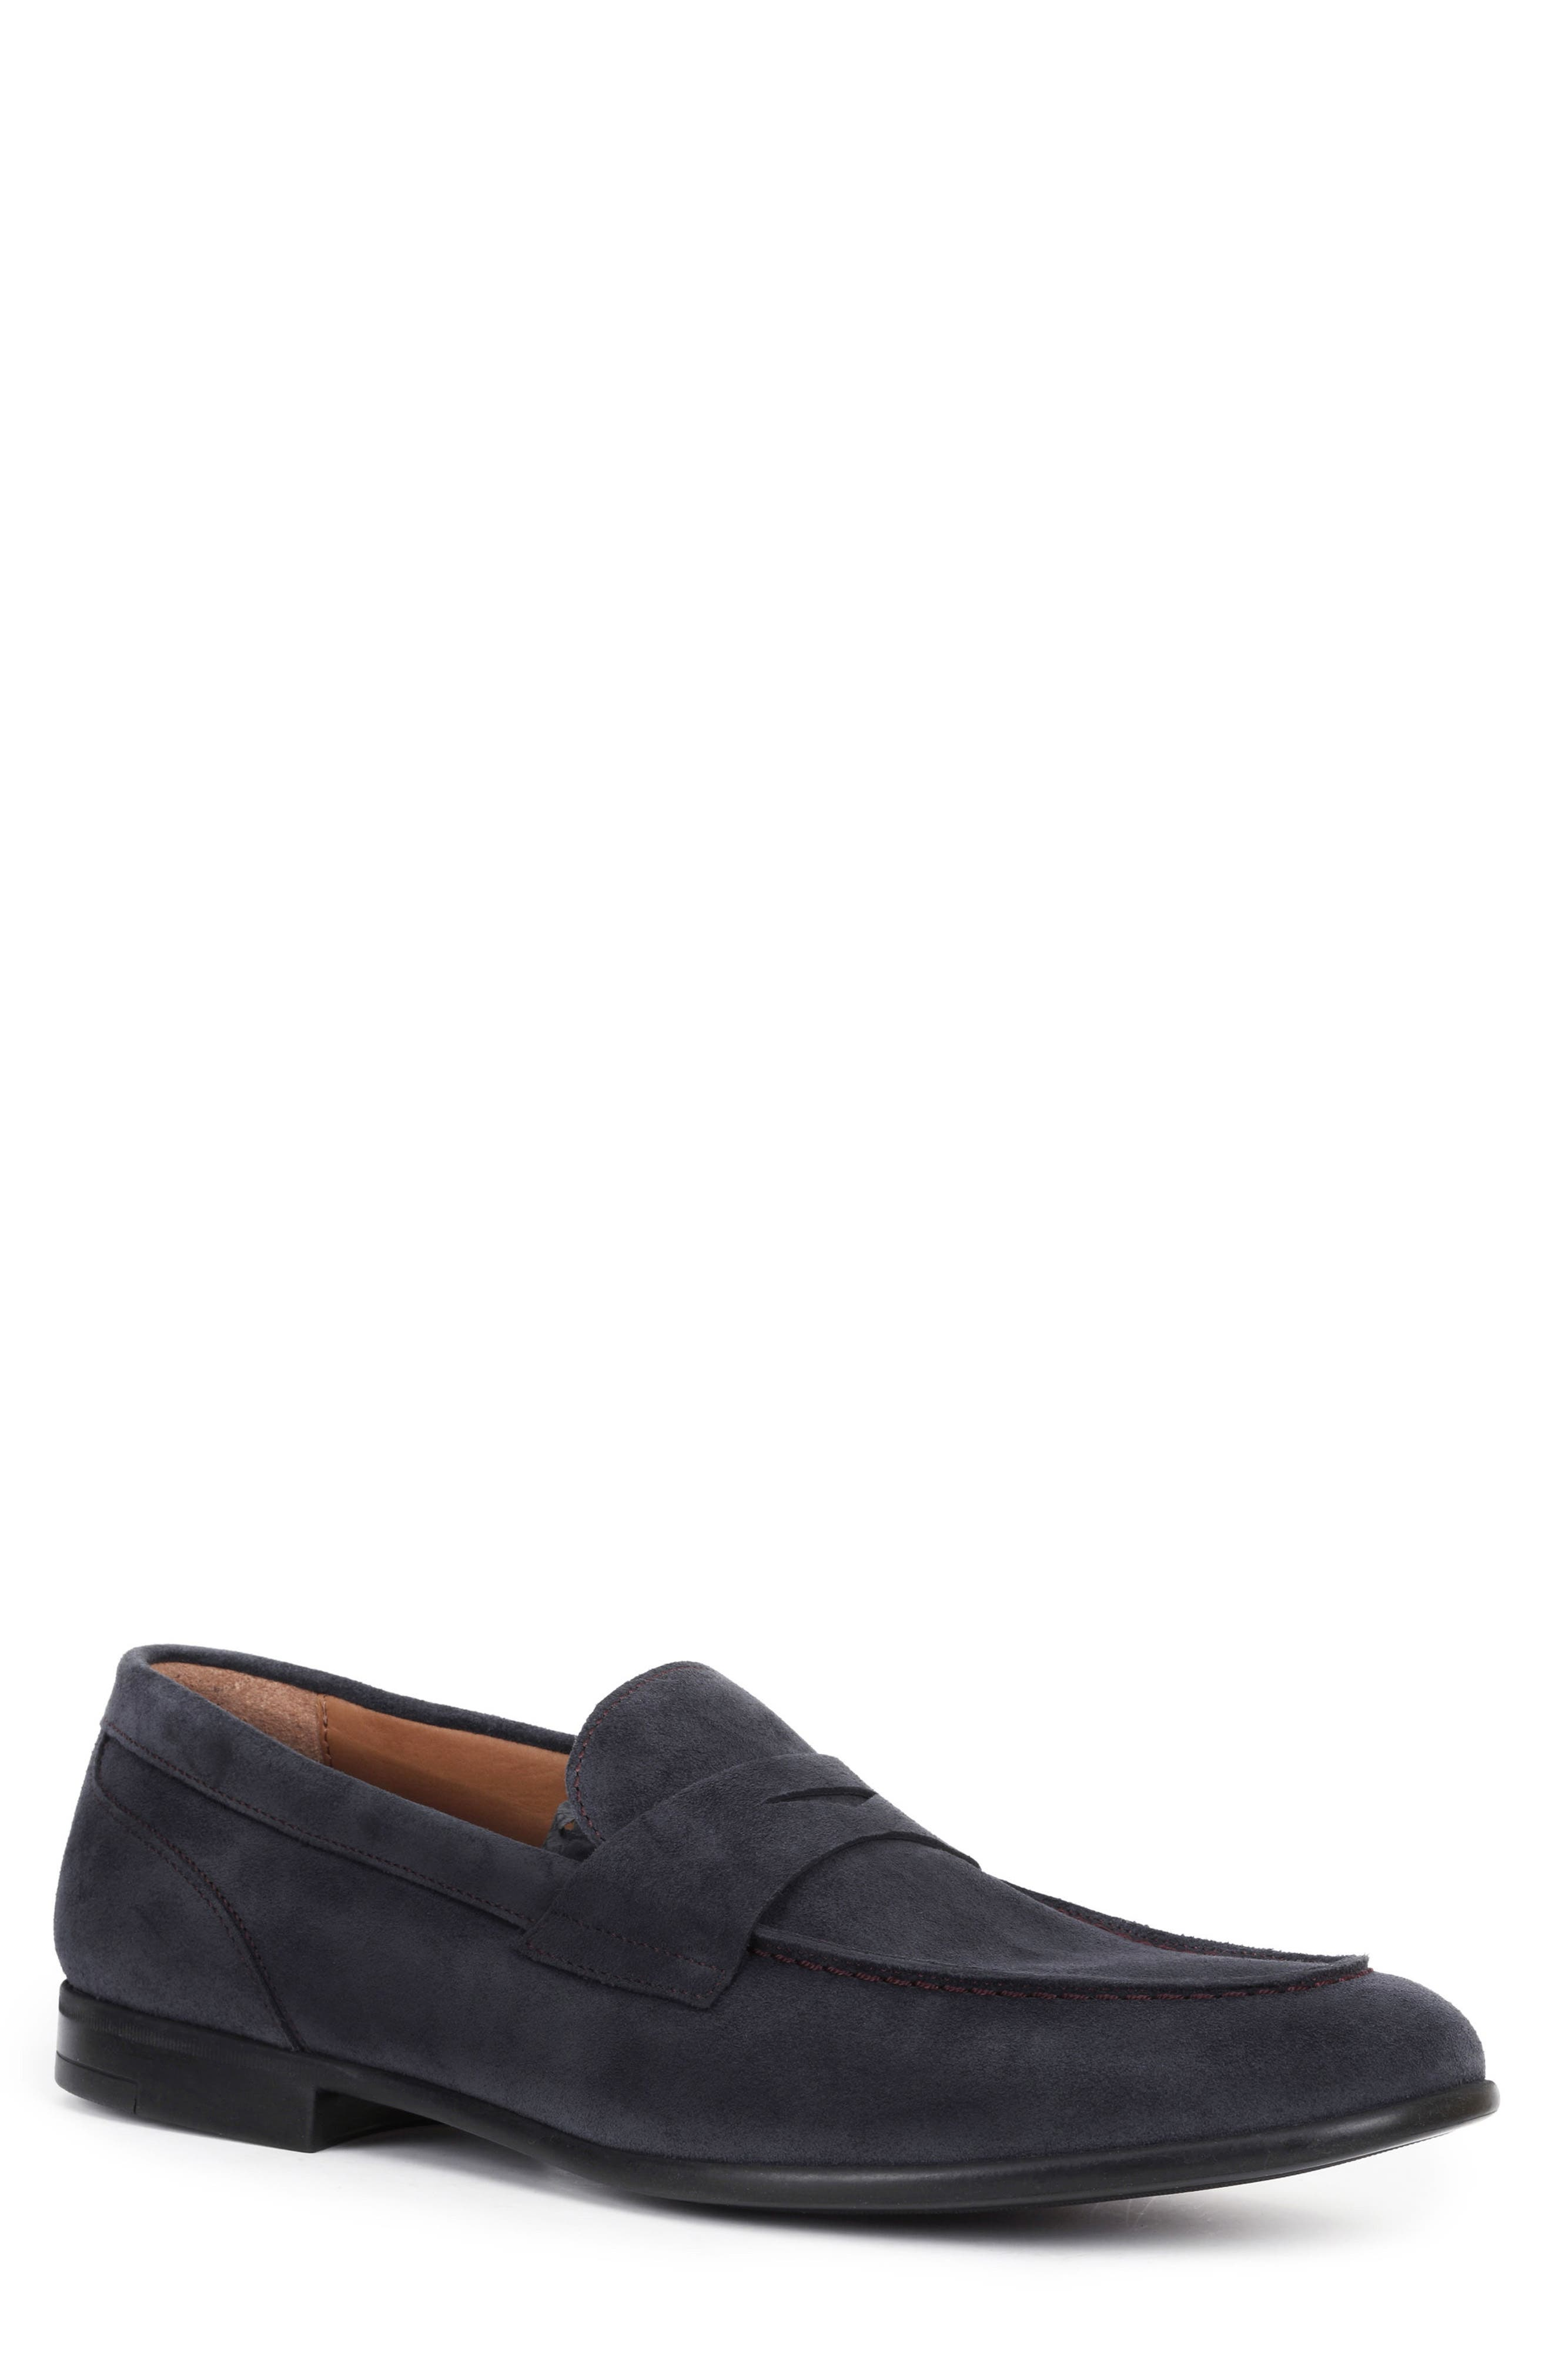 Silas Penny Loafer,                             Main thumbnail 1, color,                             Navy